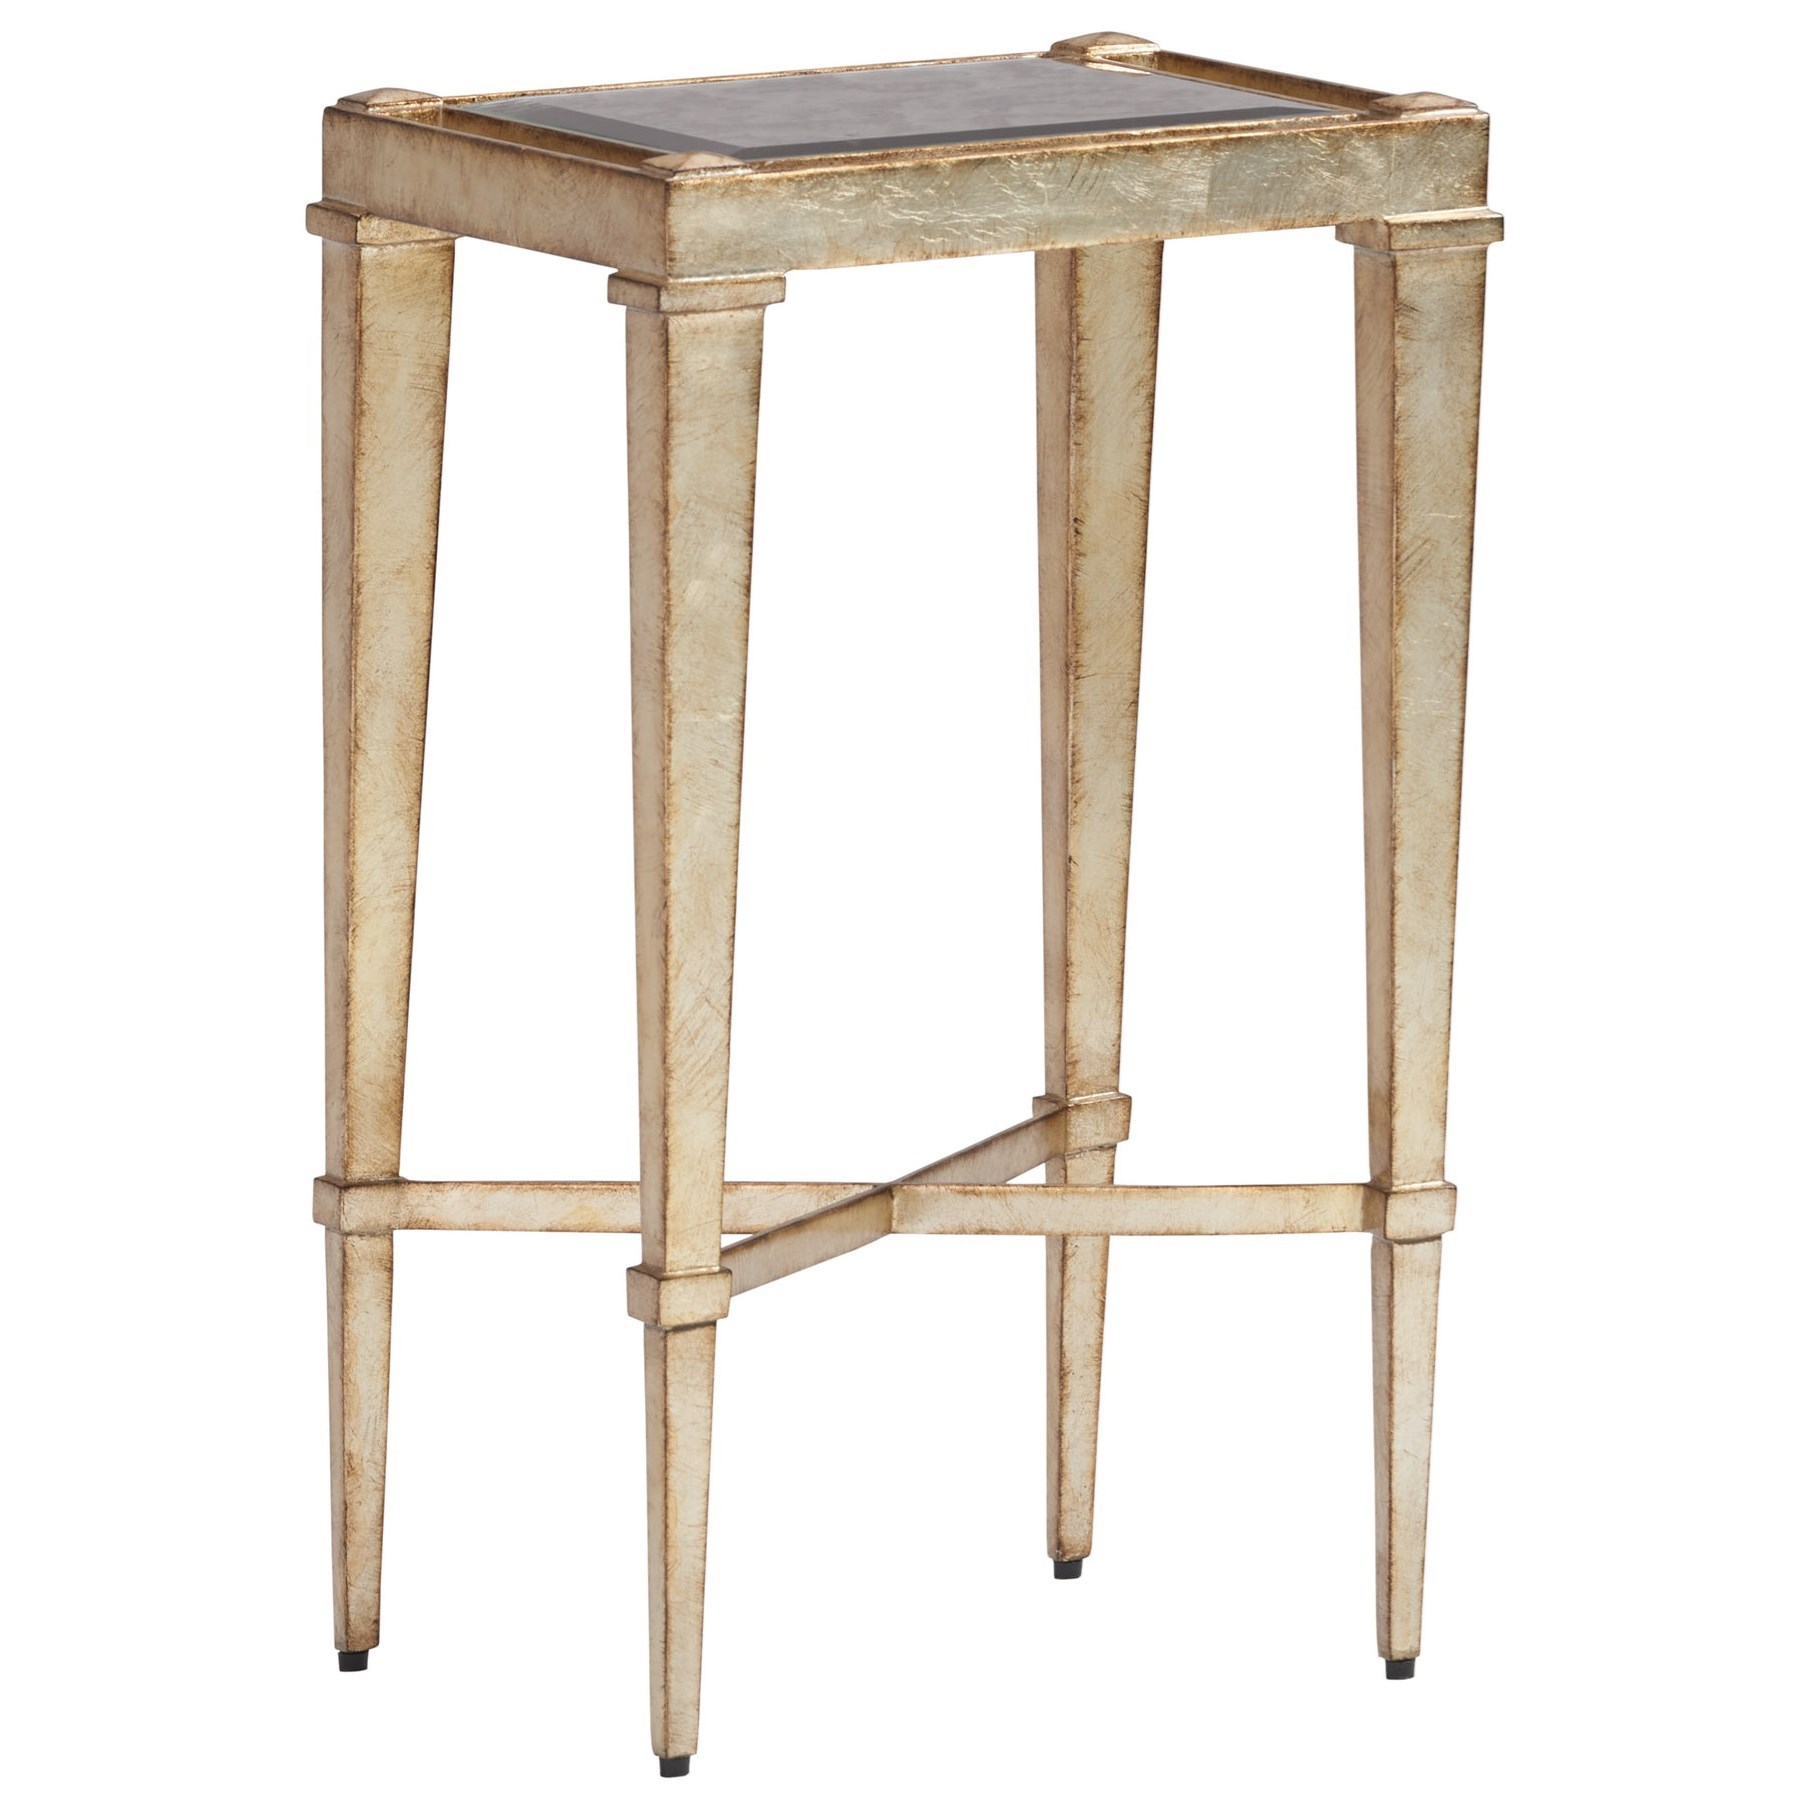 Carlyle Sheldon Chairside Table  by Lexington at Baer's Furniture